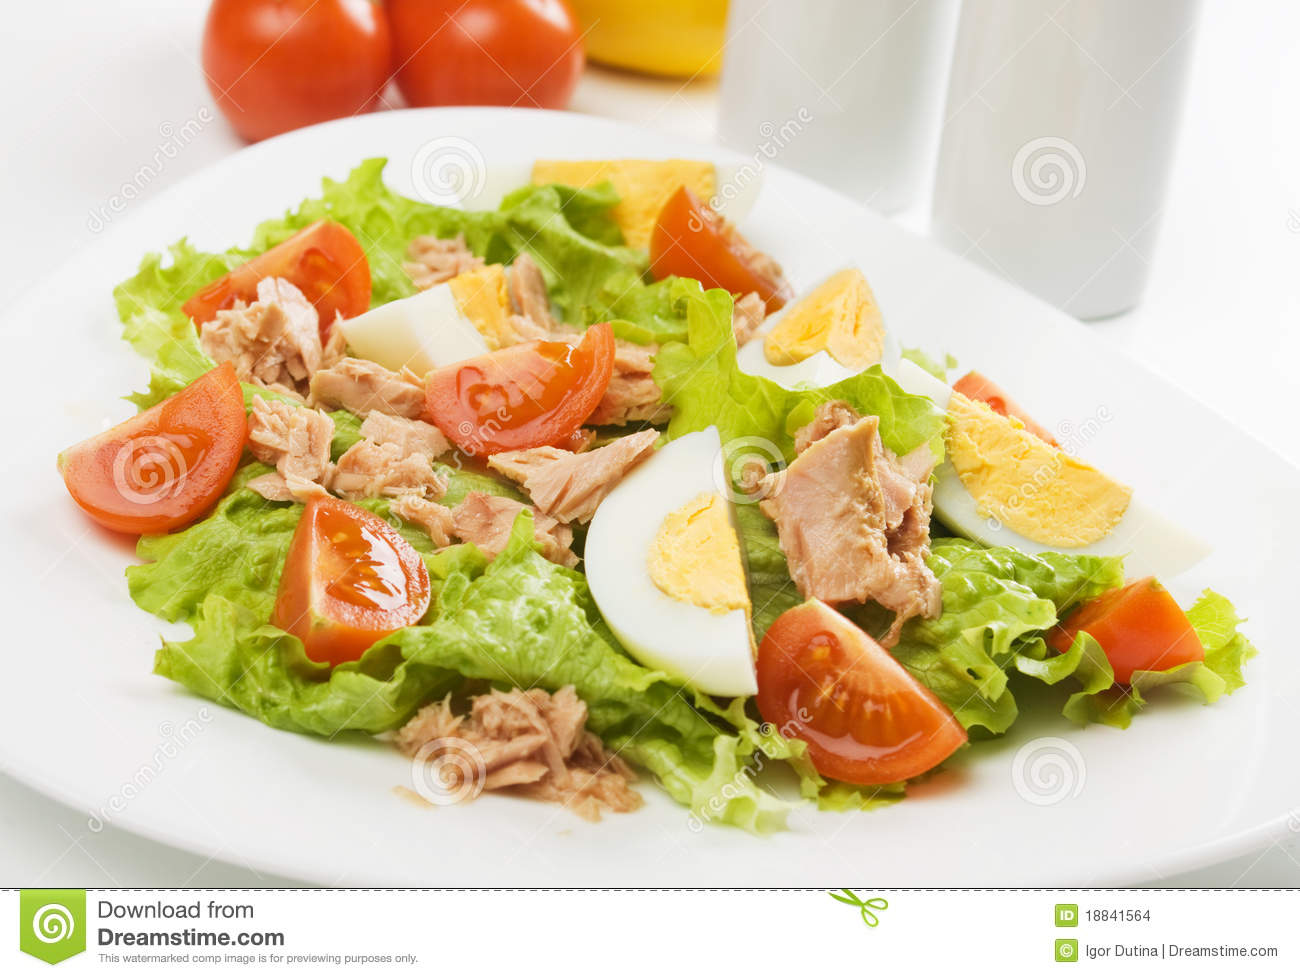 Egg and tuna salad stock photo image of meal photograph for Tuna fish salad recipe with egg